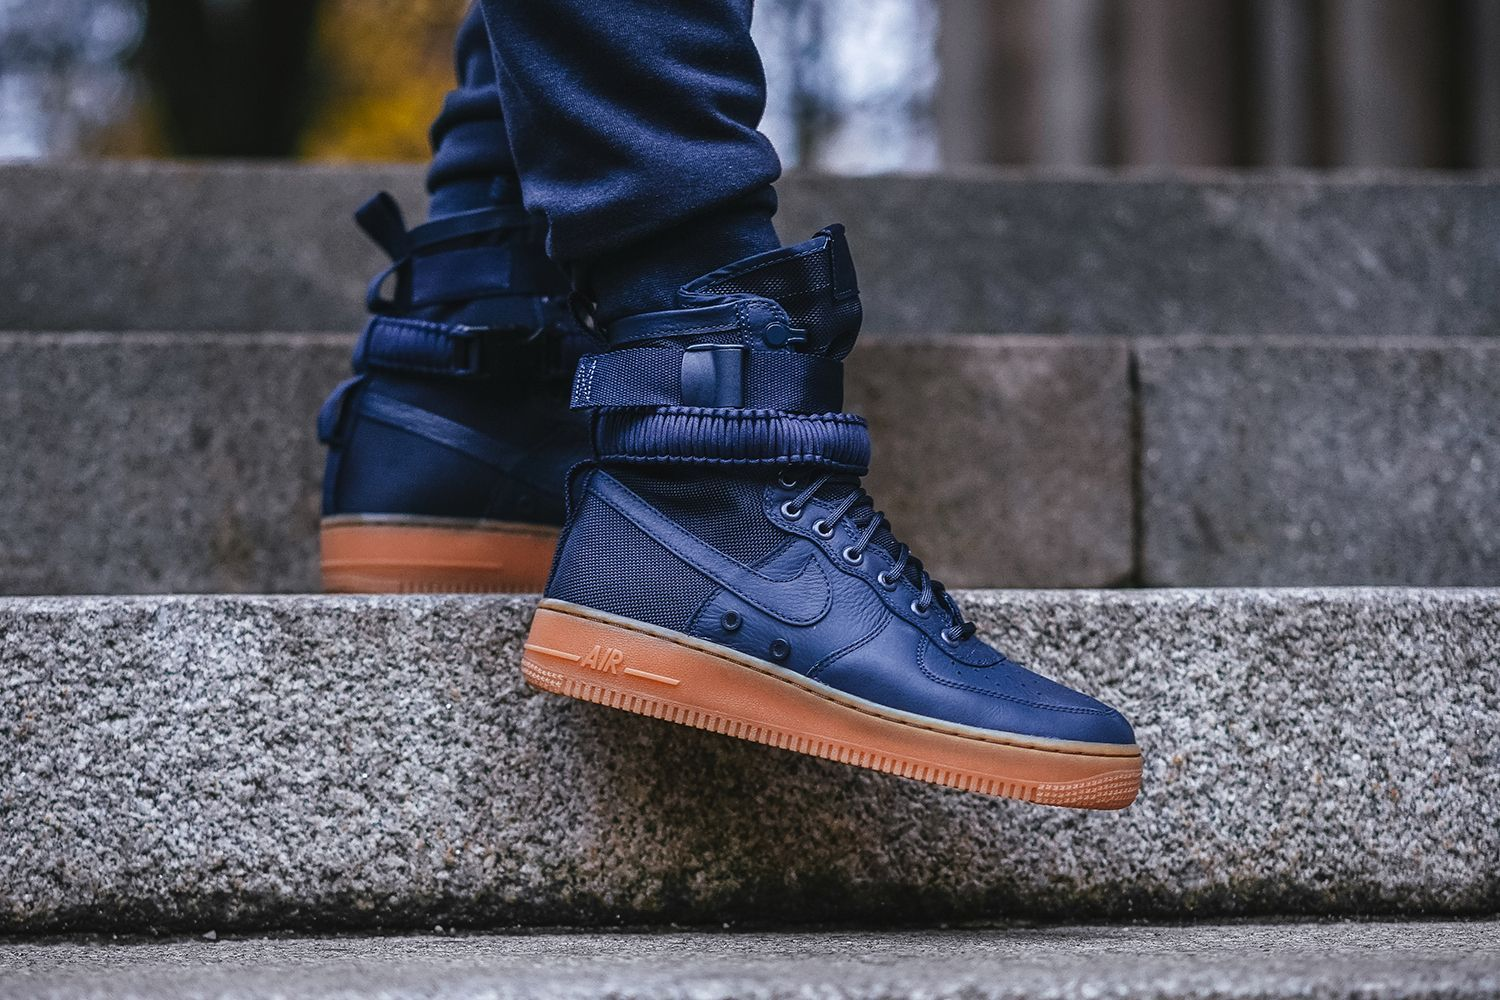 Which Colorway of the Nike SF AF1 High Boot is you favorite